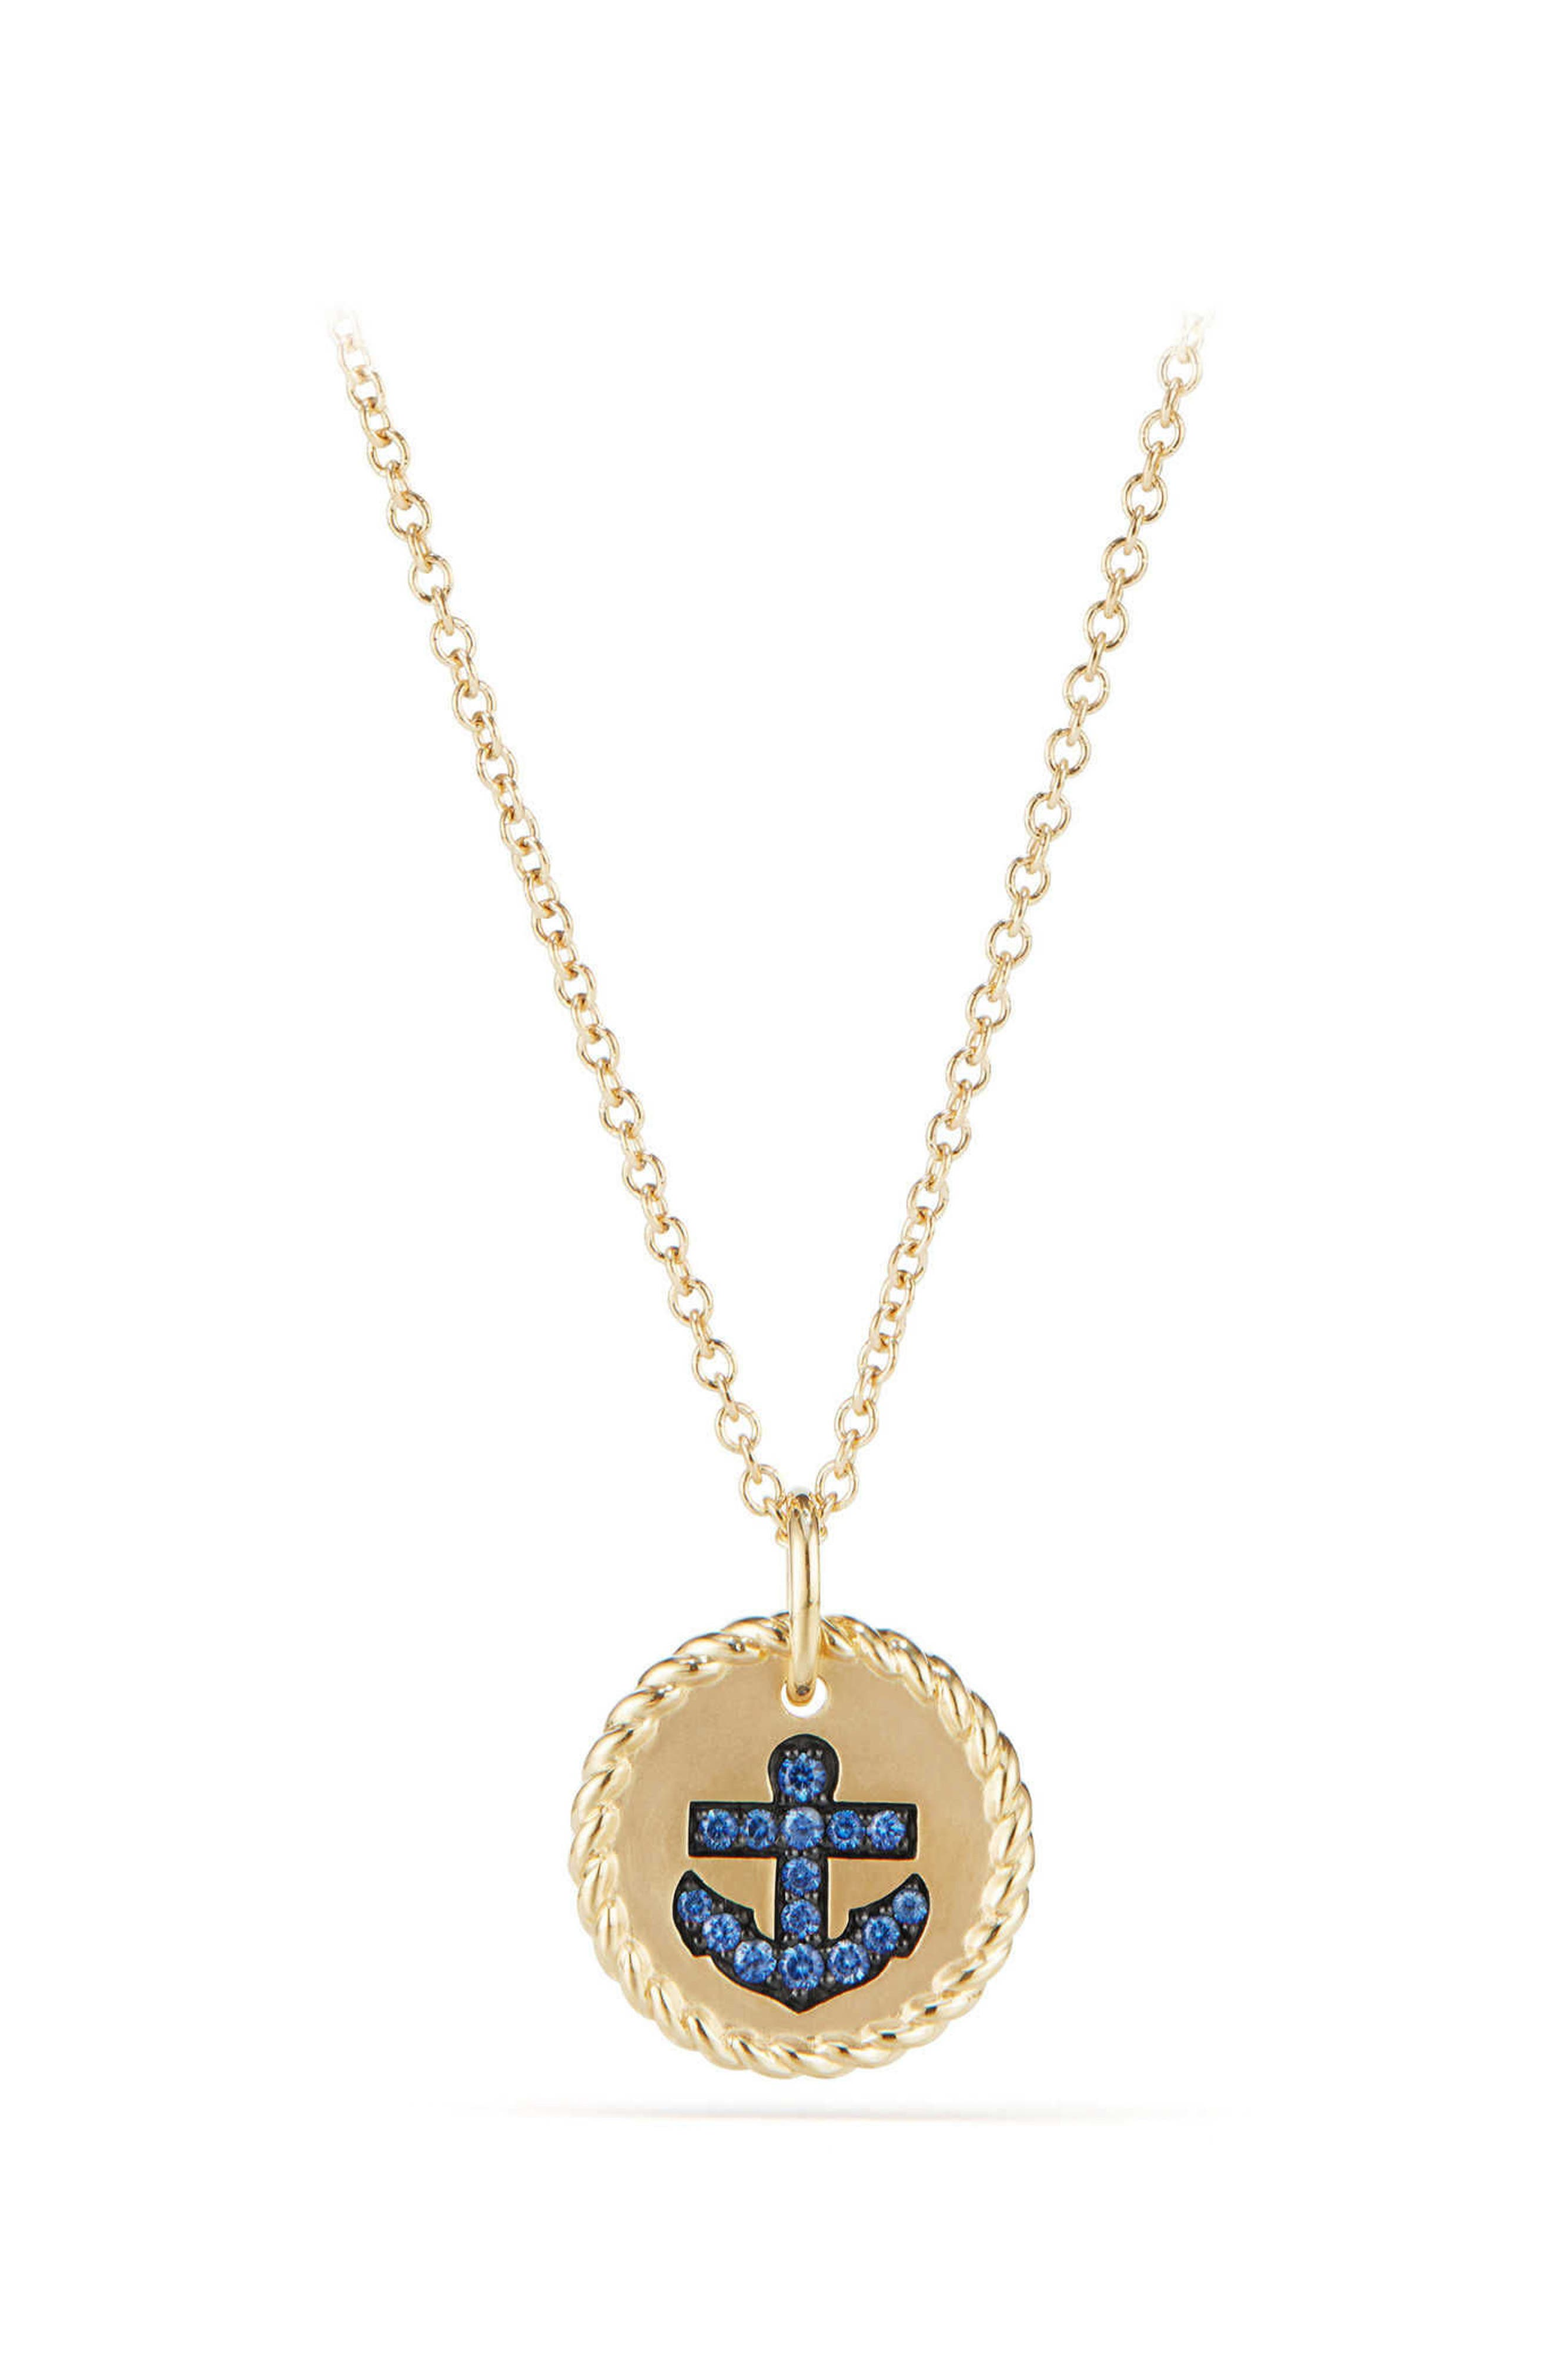 Main Image - David Yurman Cable Collectibles Anchor Necklace with Light Blue Sapphires in 18K Gold